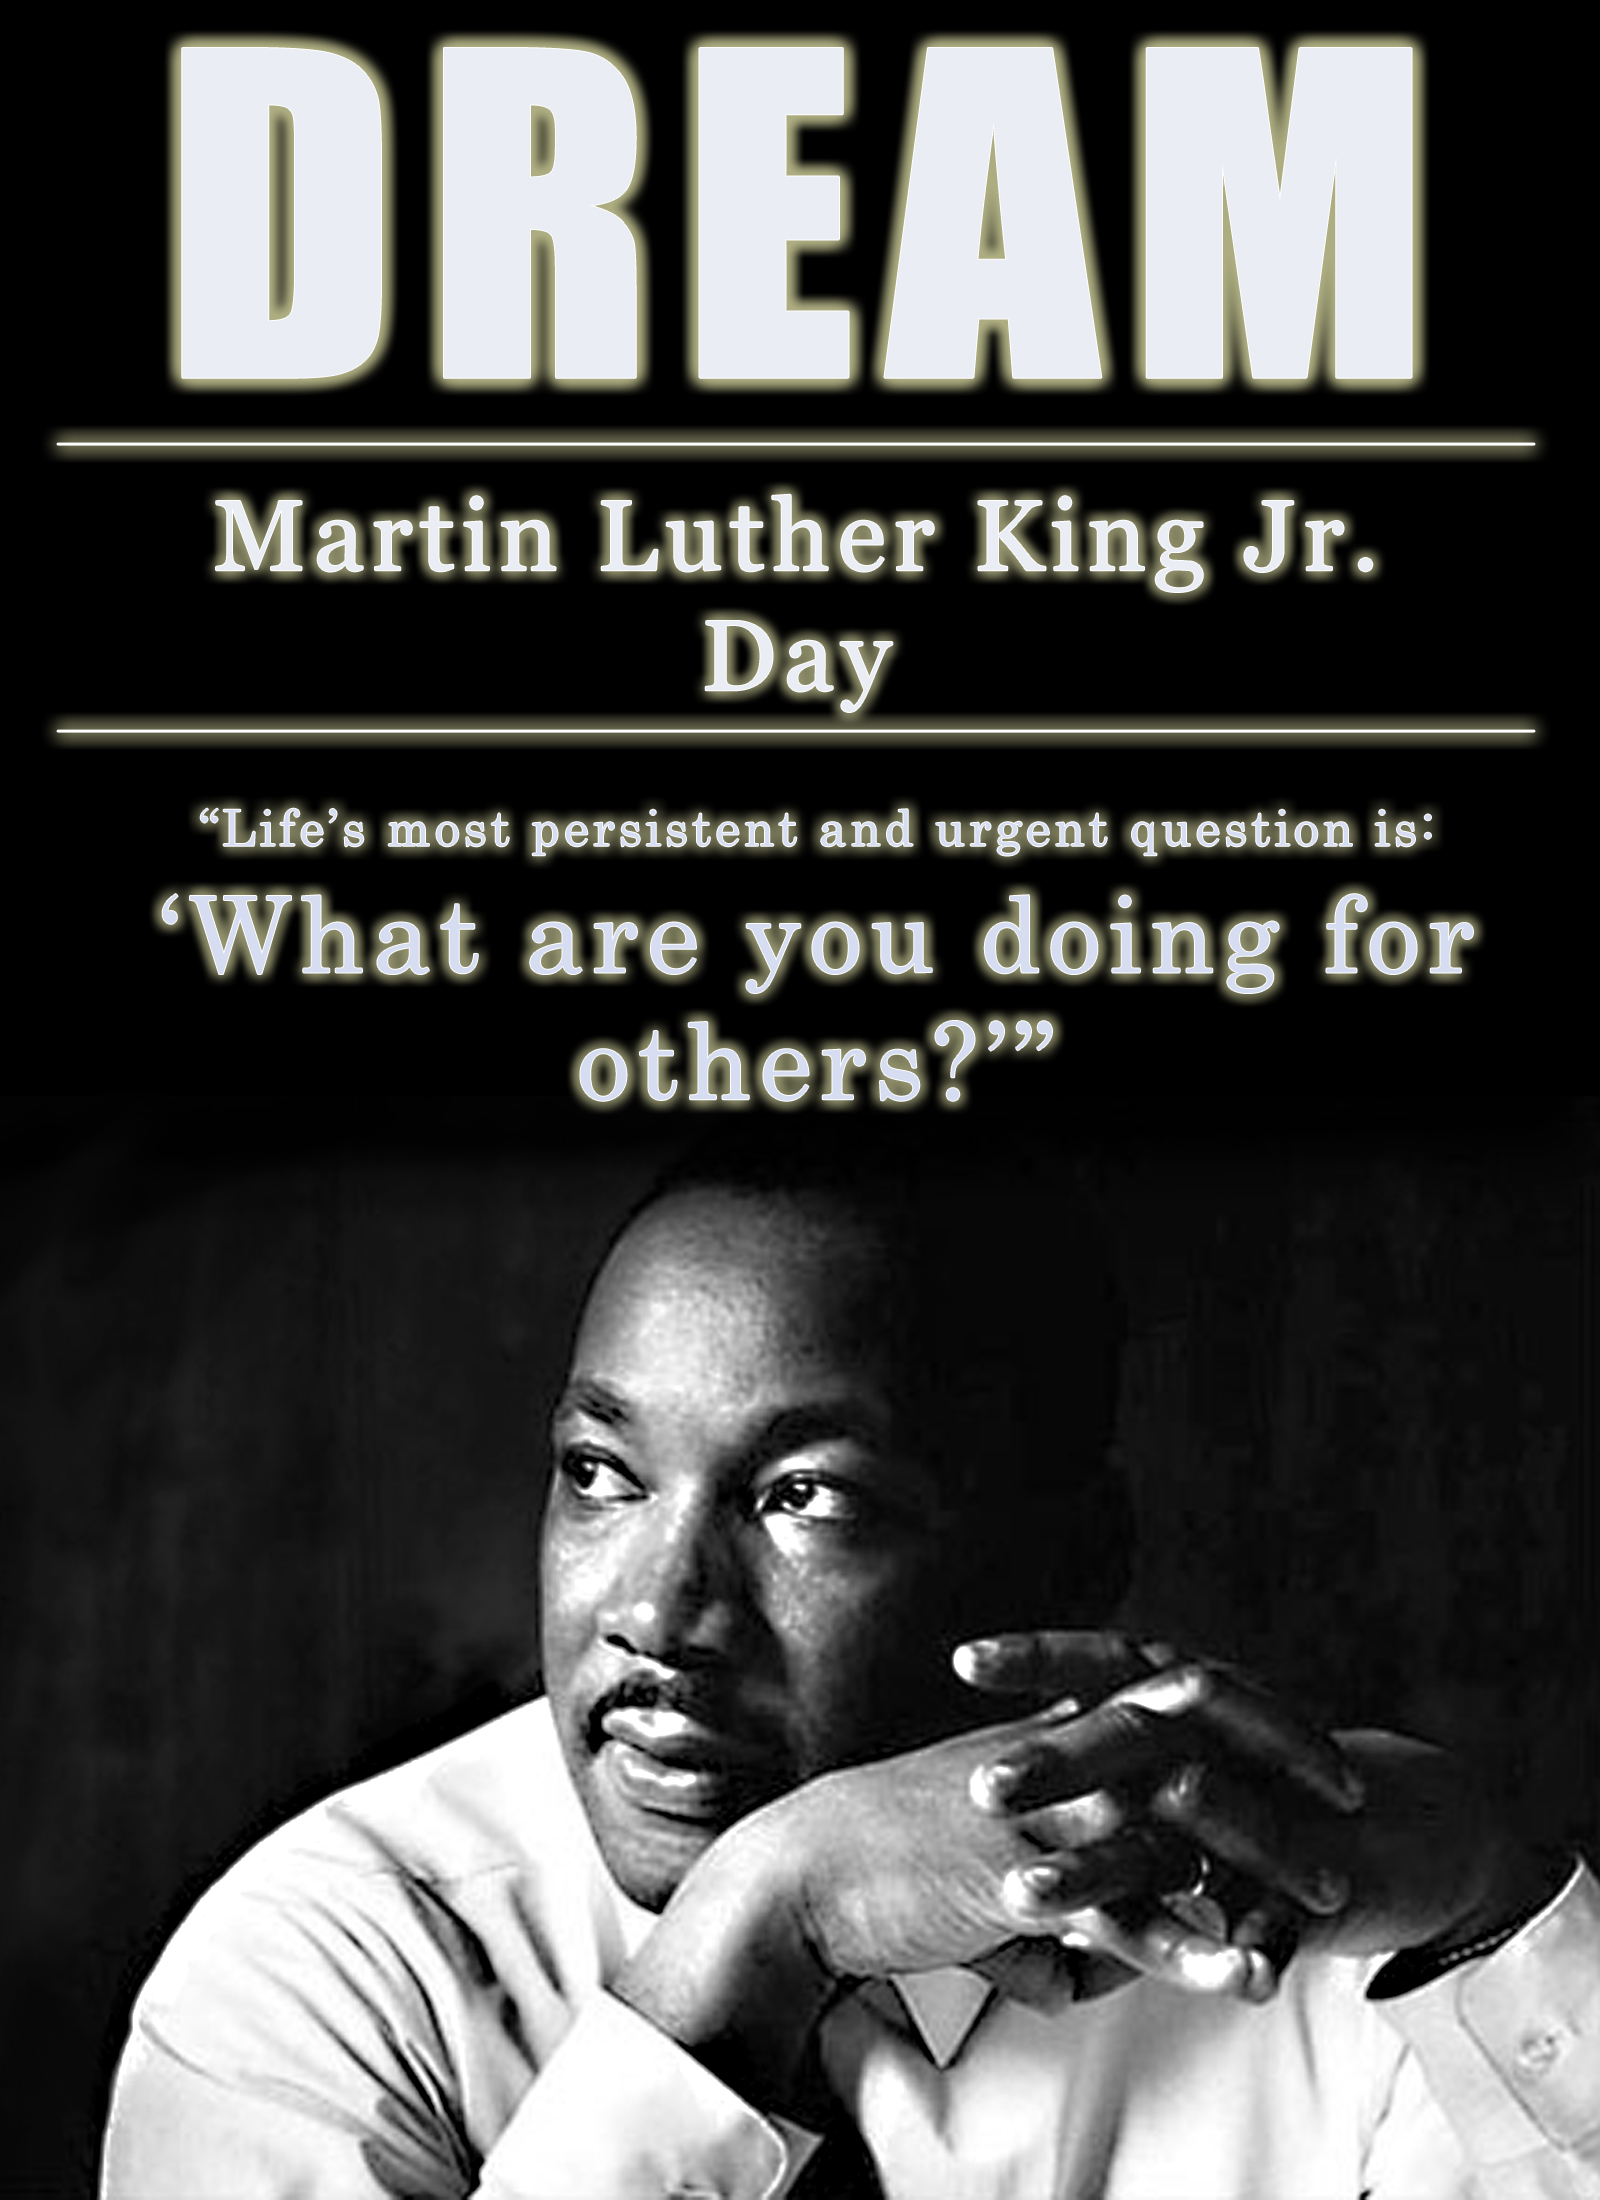 DREAM - Martin Luther King Jr. Day